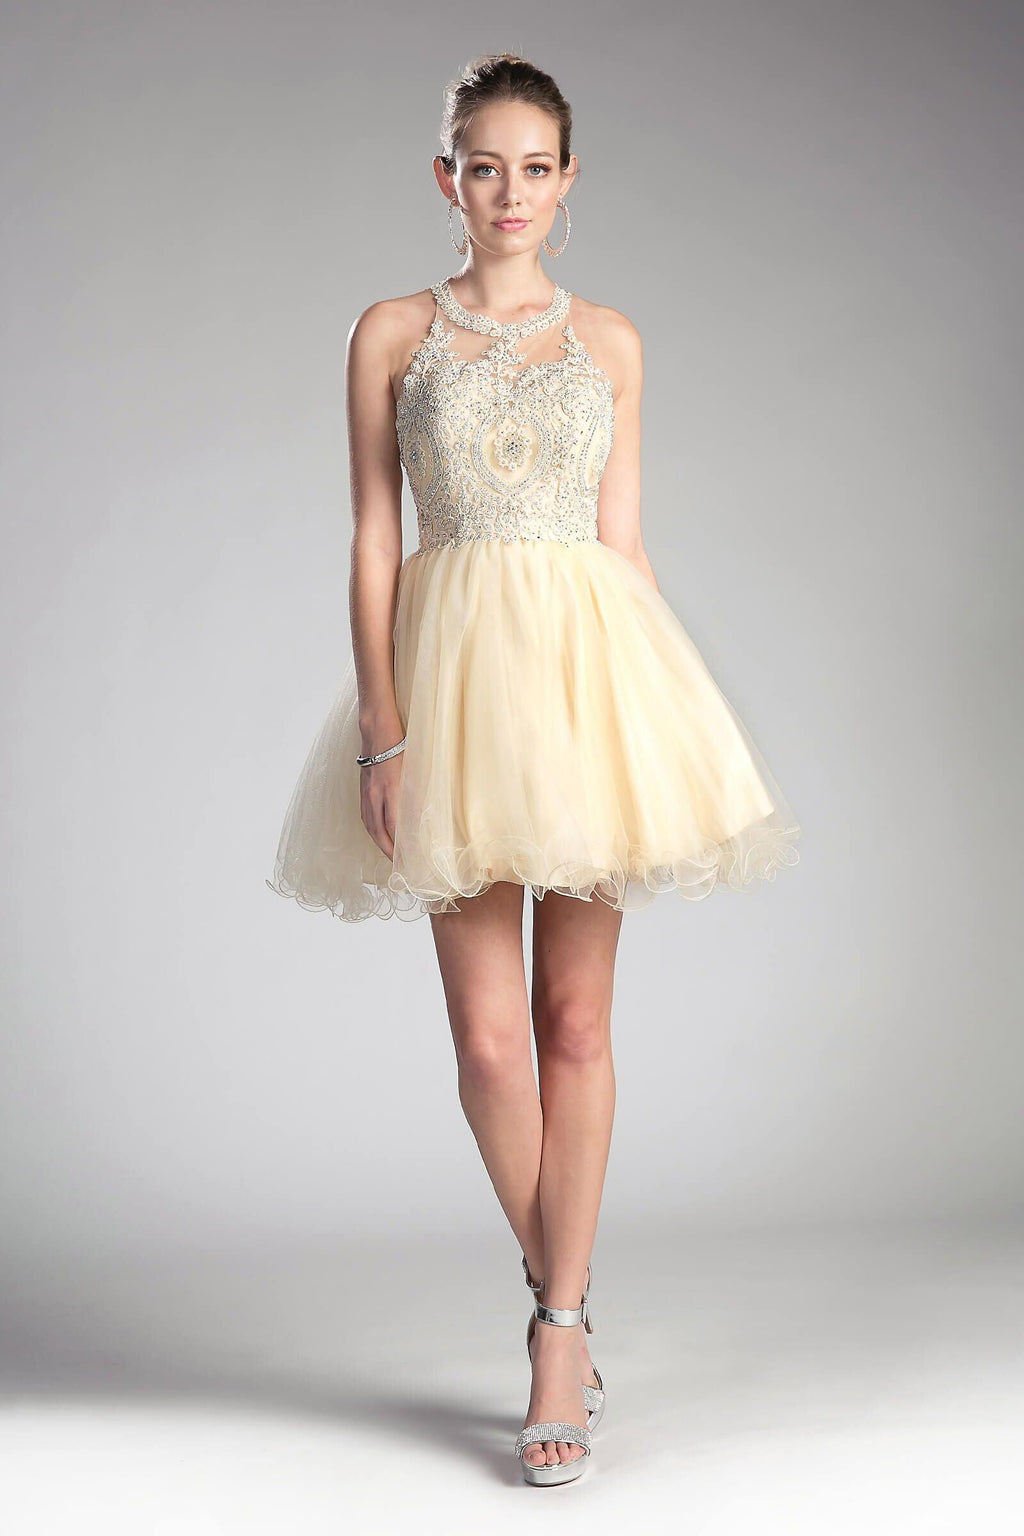 Short Prom Halter Neck Homecoming Dress - The Dress Outlet Champagne